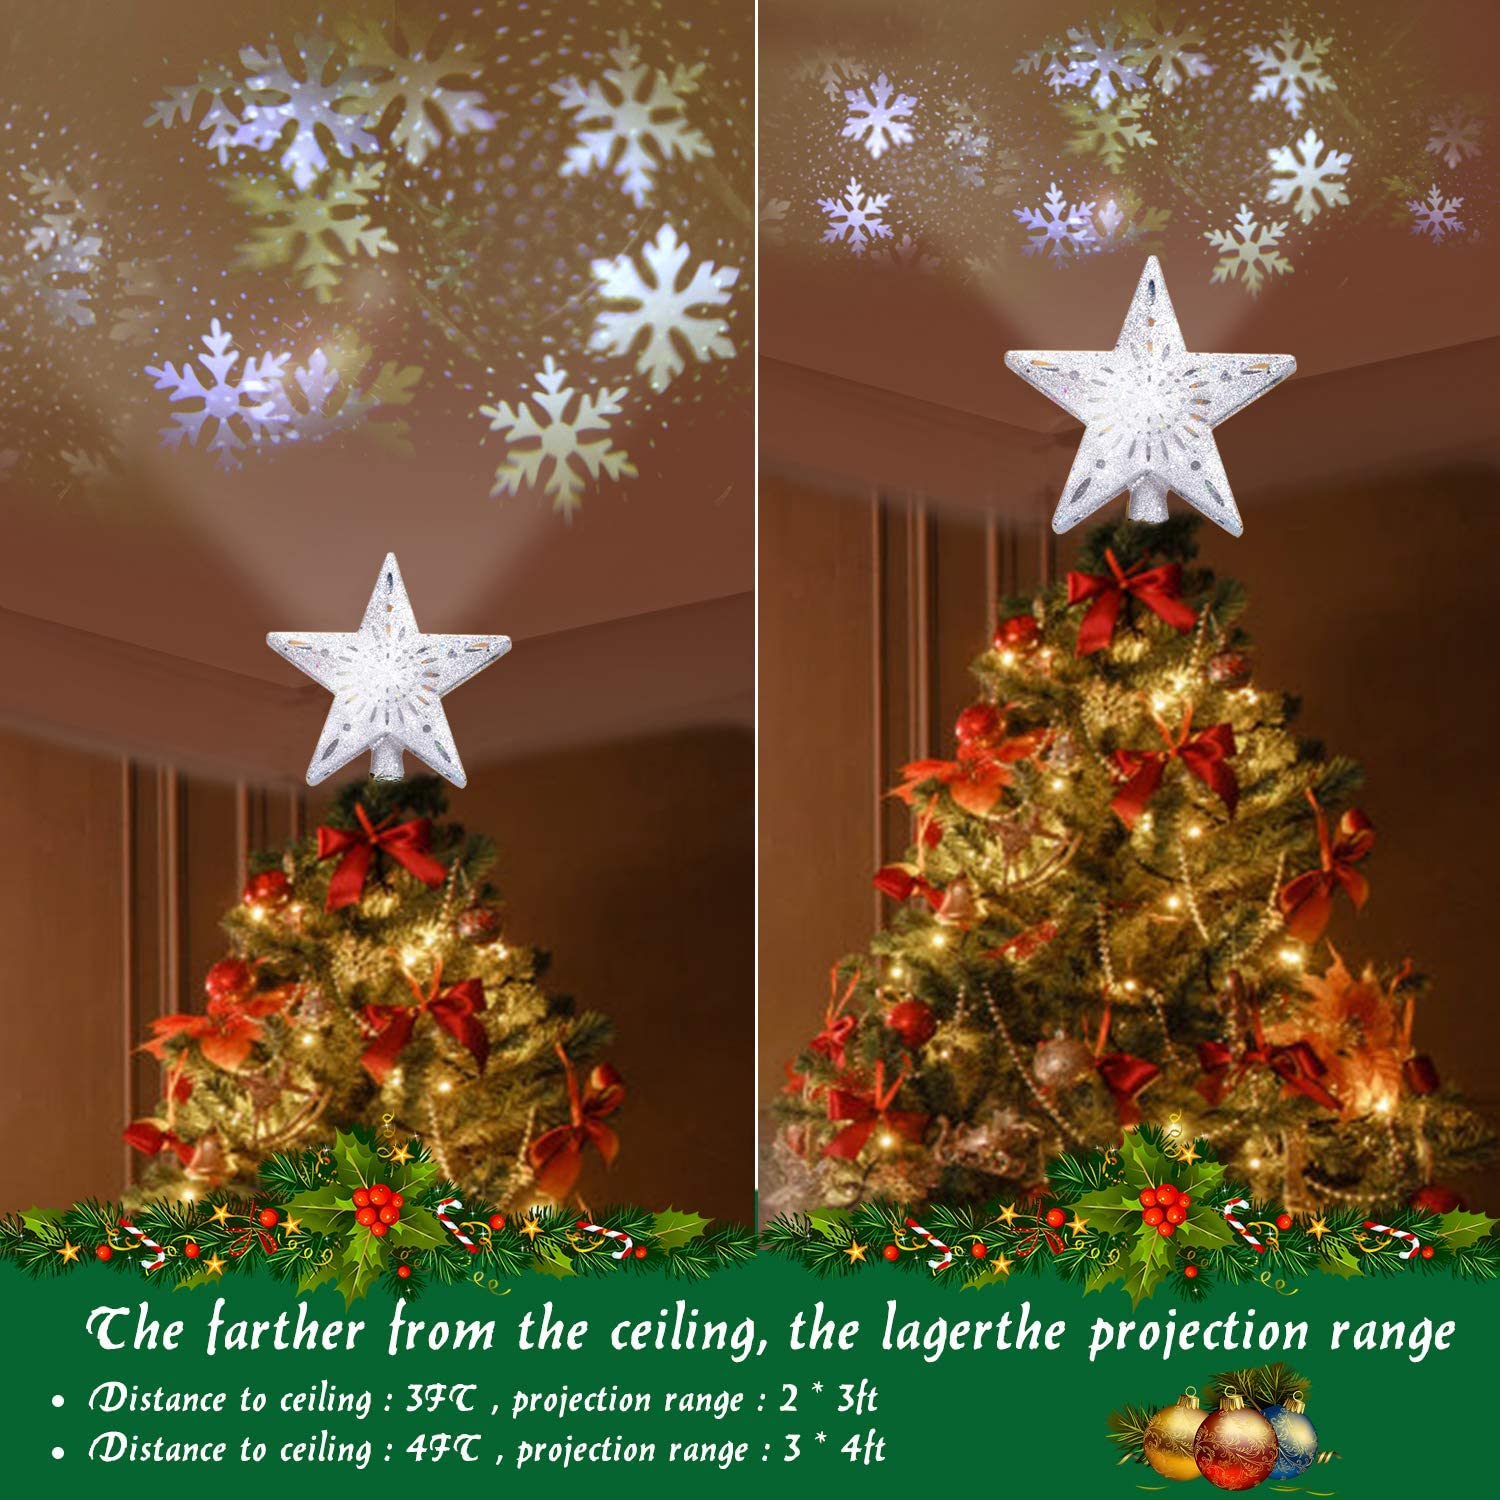 Amazon Com Yostyle Christmas Tree Topper Lighted With Led Snowflake Projector Lights Lighted Star Tree Topper For Christmas Tree Decorations Kitchen Dining